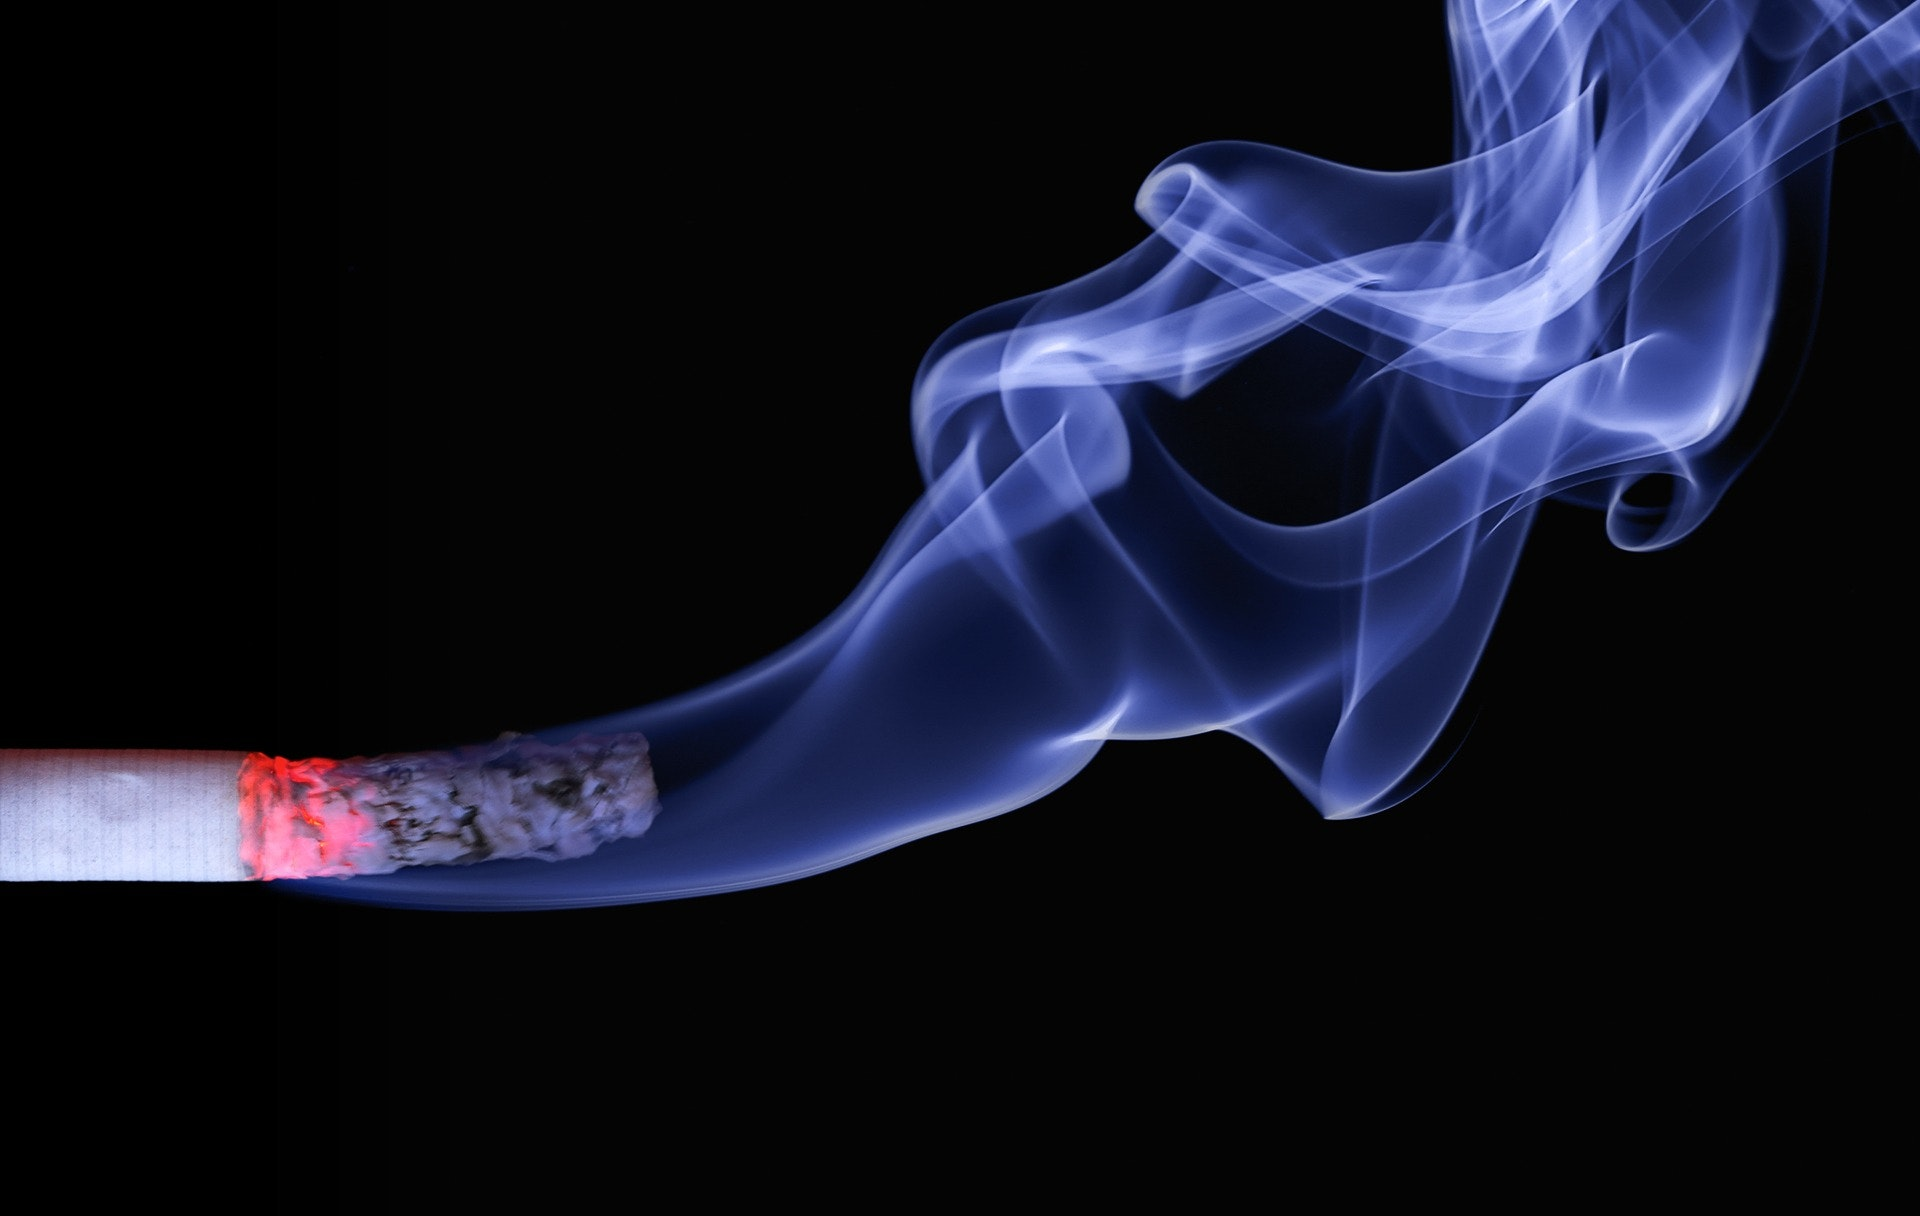 Lighted Cigarette Stick And White Smoke Wallpaper Free Stock Photo